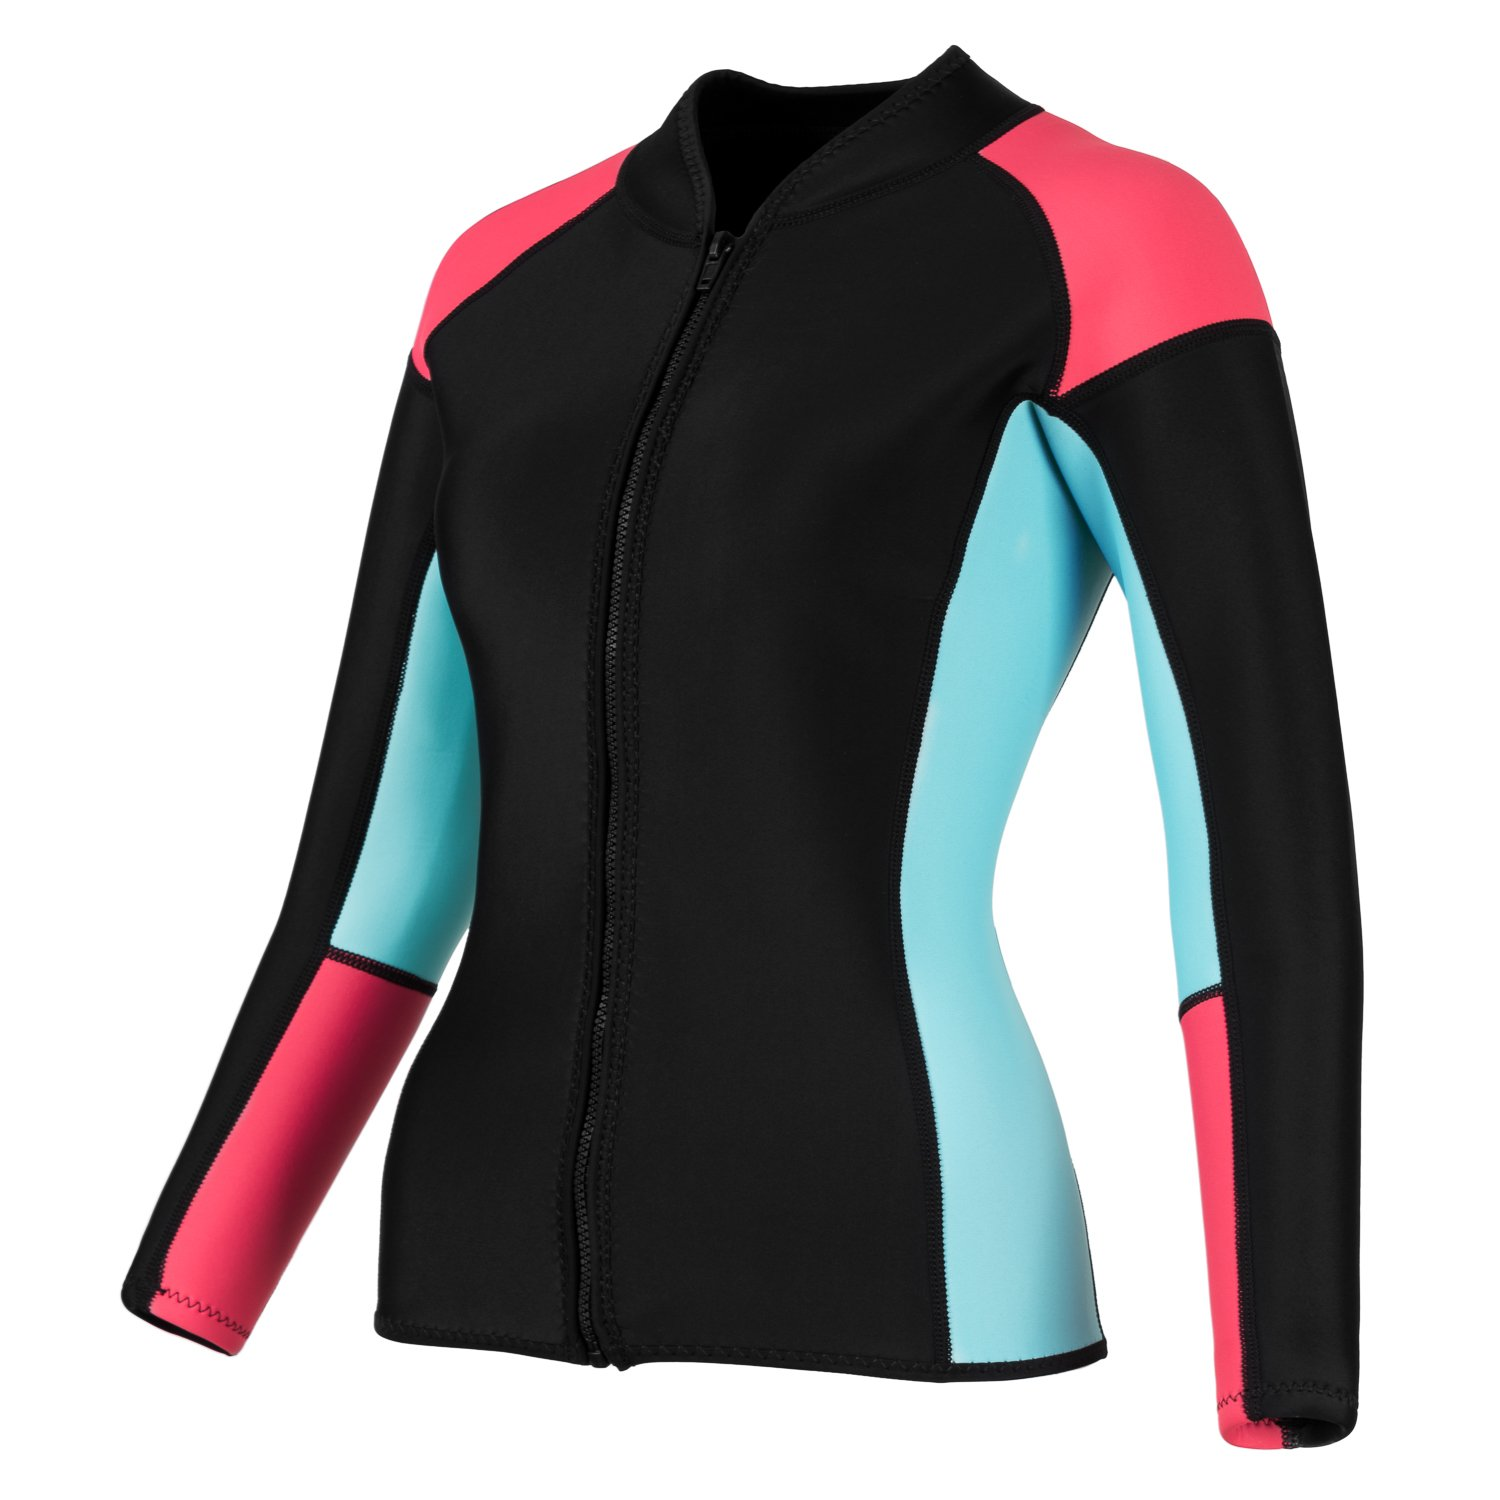 EYCE DIVE & SAIL Women's 3/2 mm Wetsuits Jacket Long Sleeve Neoprene Wetsuit Top (Coral/Blue, S = US 2) by EYCE DIVE & SAIL